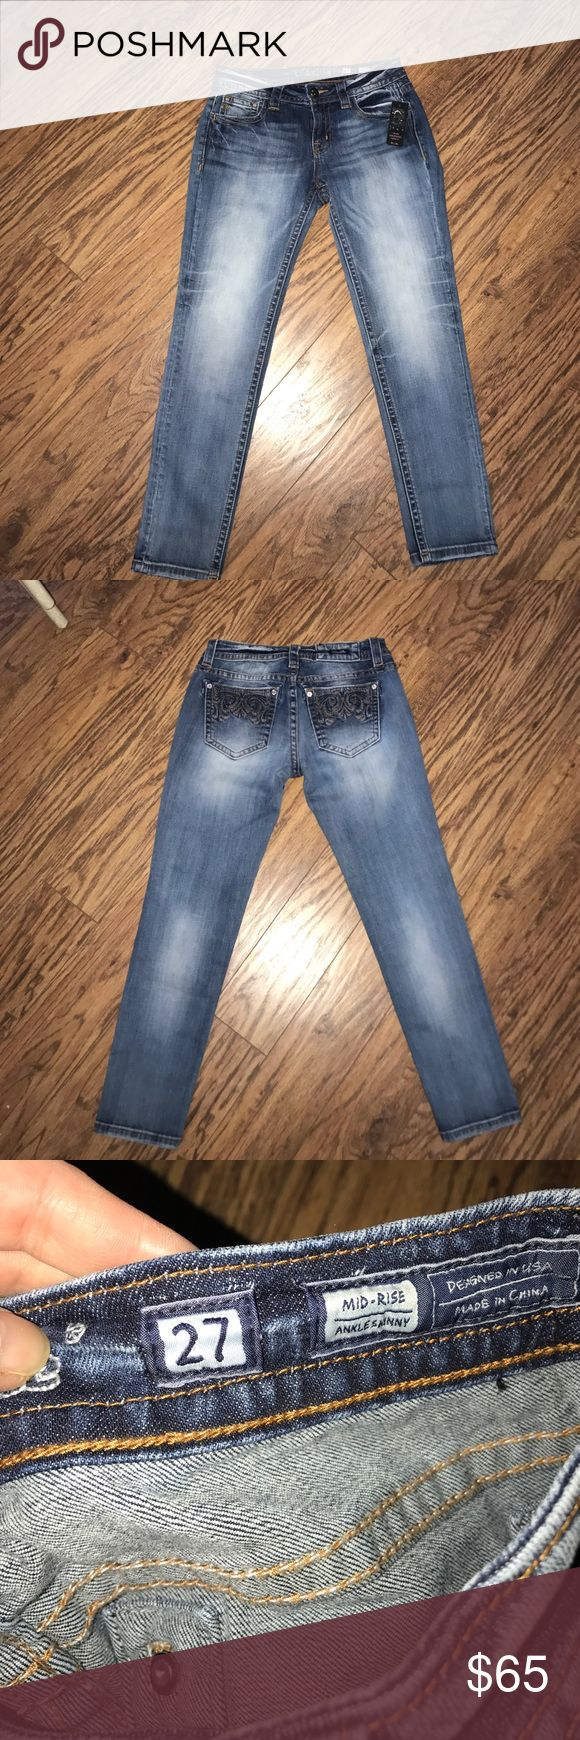 ❤️NWT Miss Me jeans❤️ Brand new Miss Me jeans Miss Me Jeans Ankle & Cropped